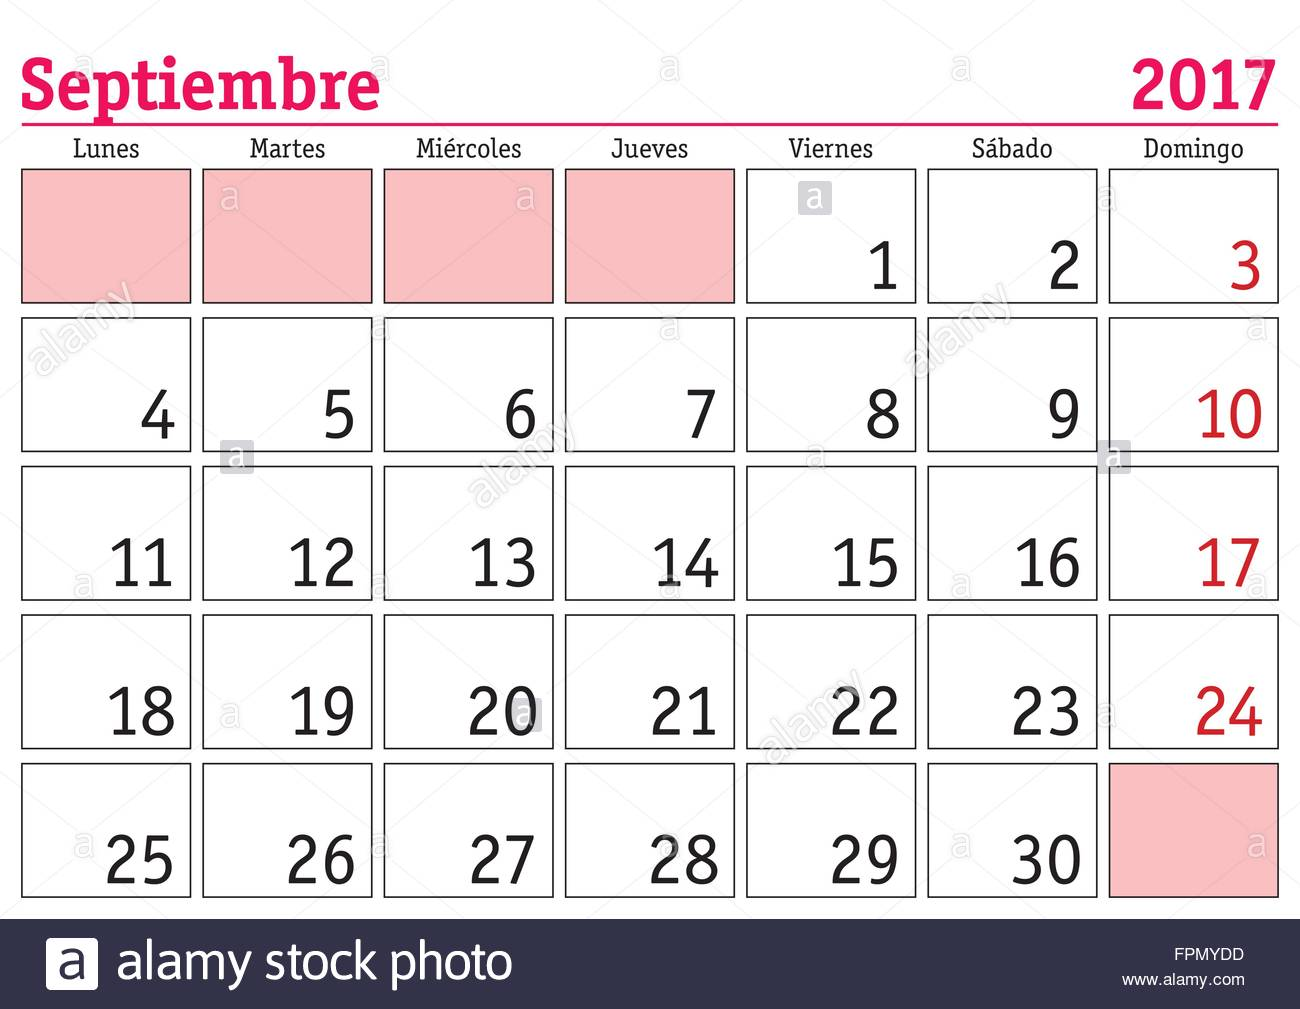 september month in a year 2017 wall calendar in spanish